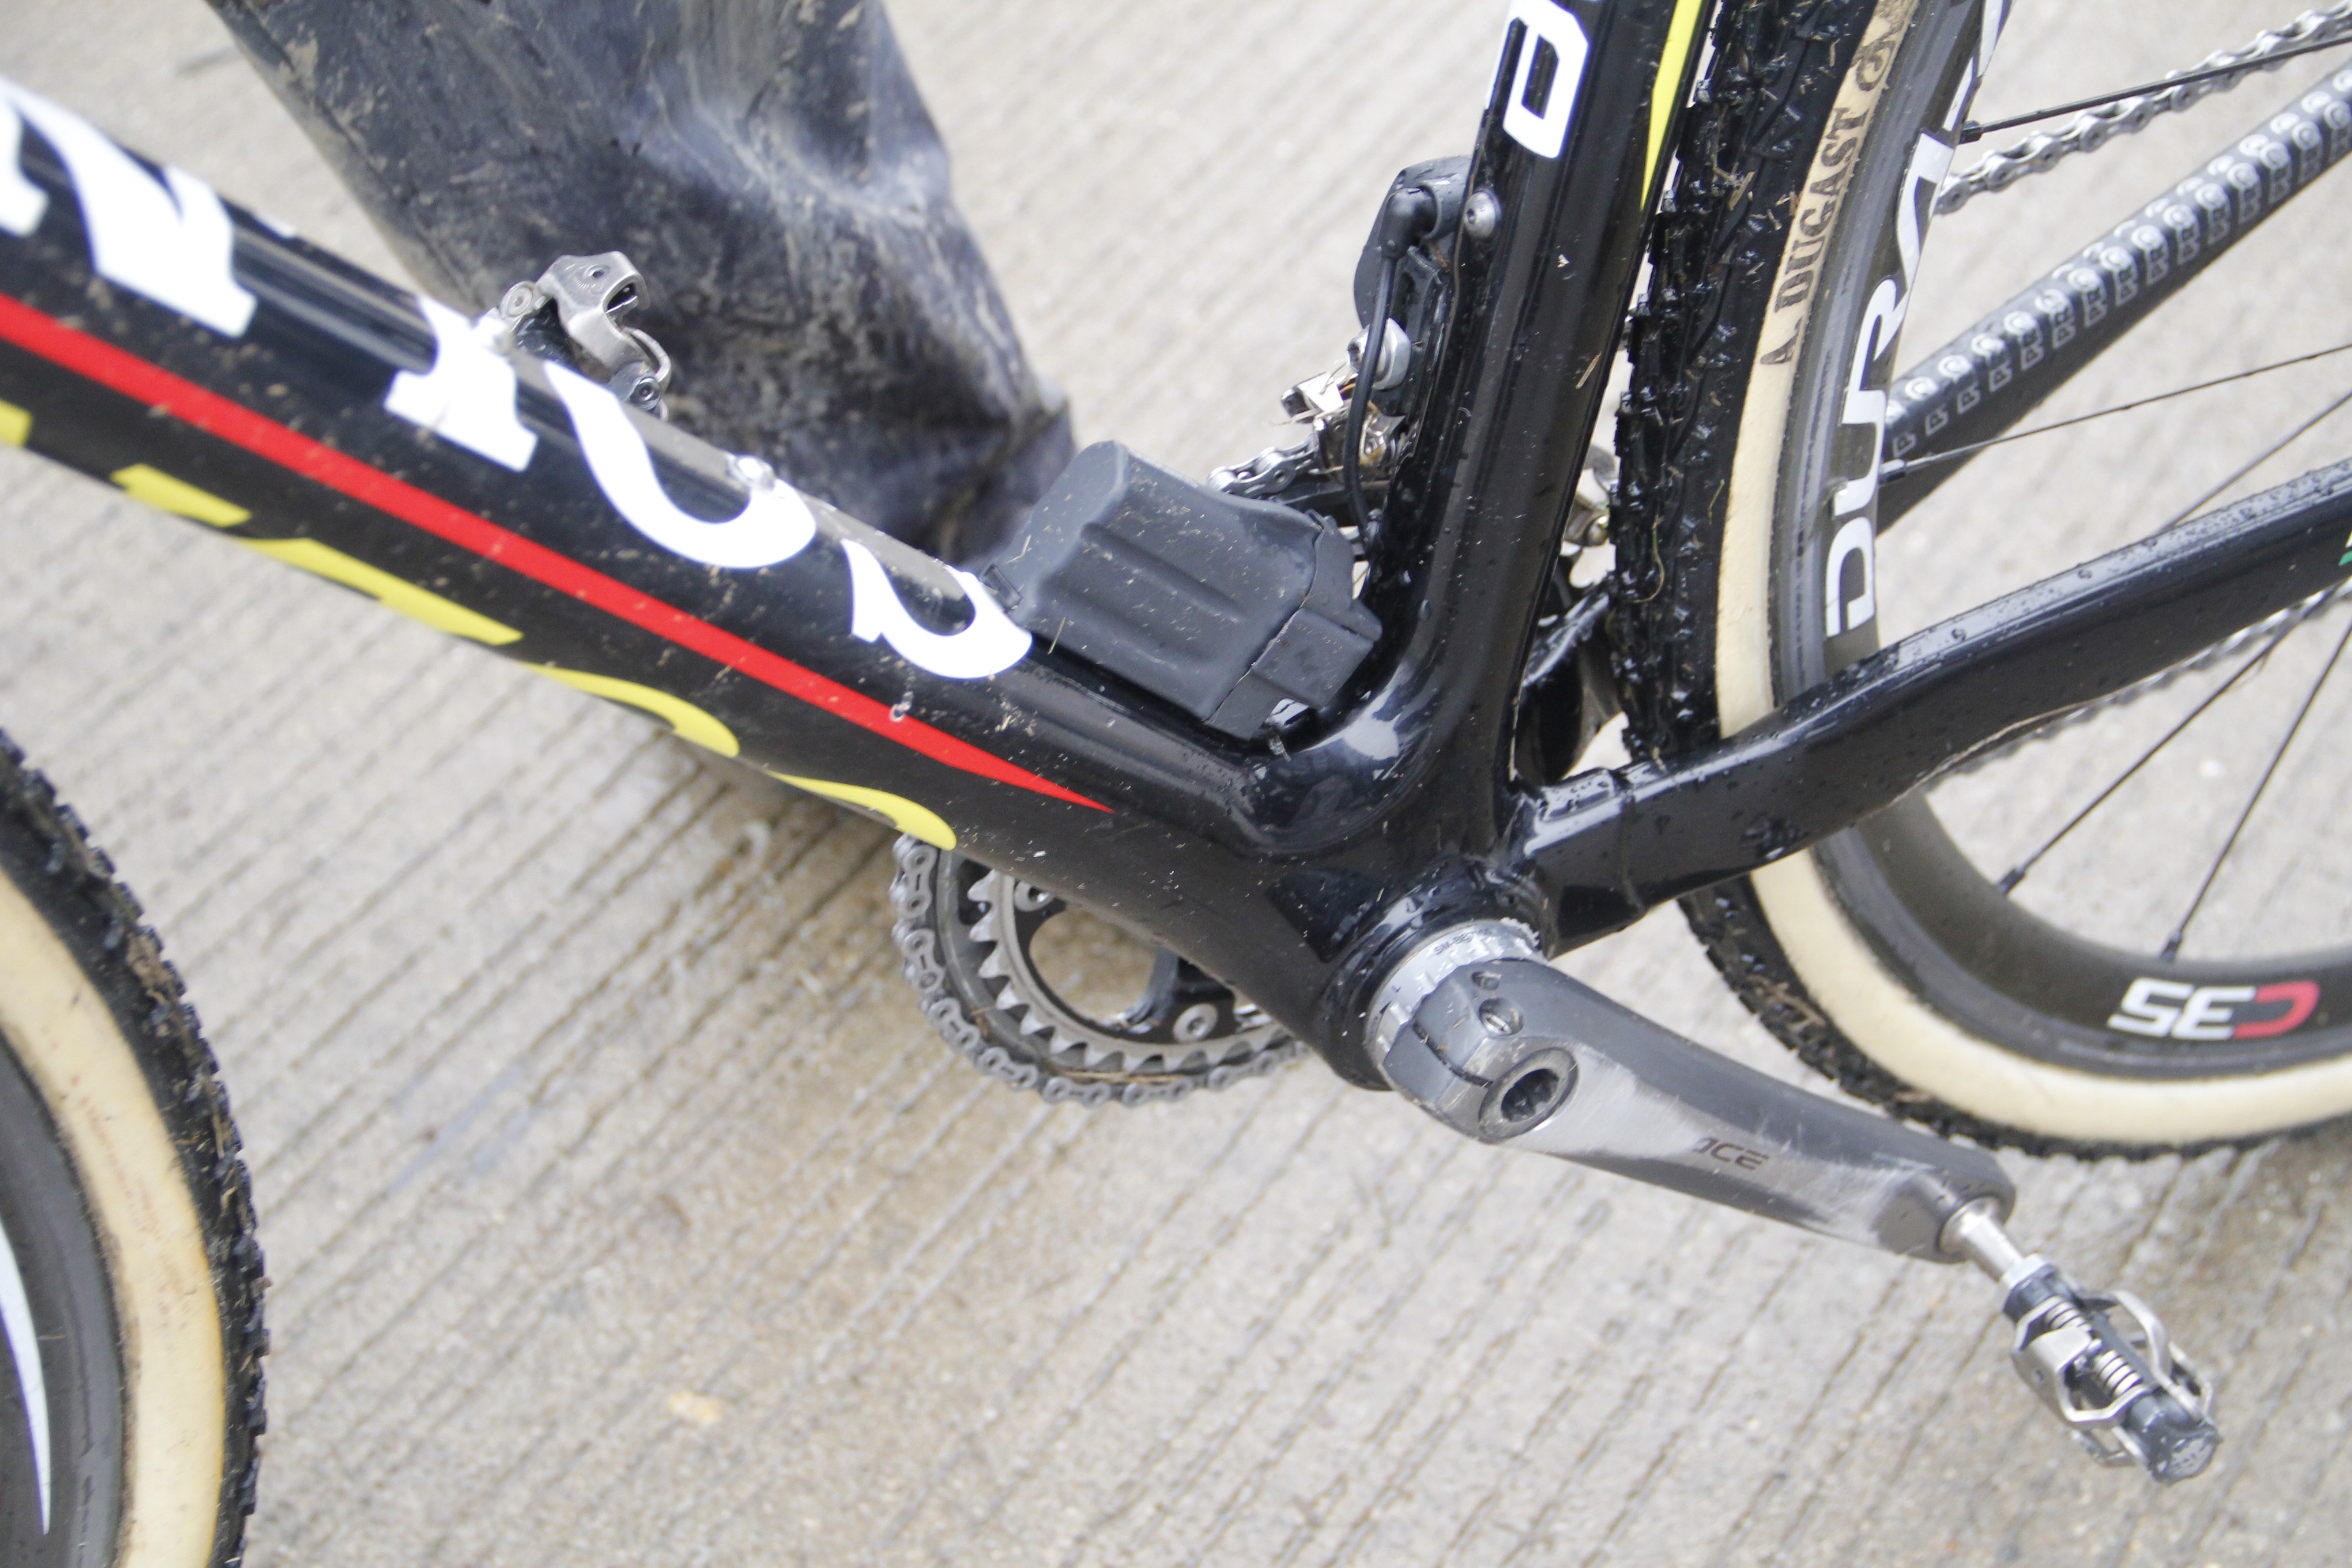 DA-7900 crankset with 7800 46-39 chainrings and 11-28 cassette.